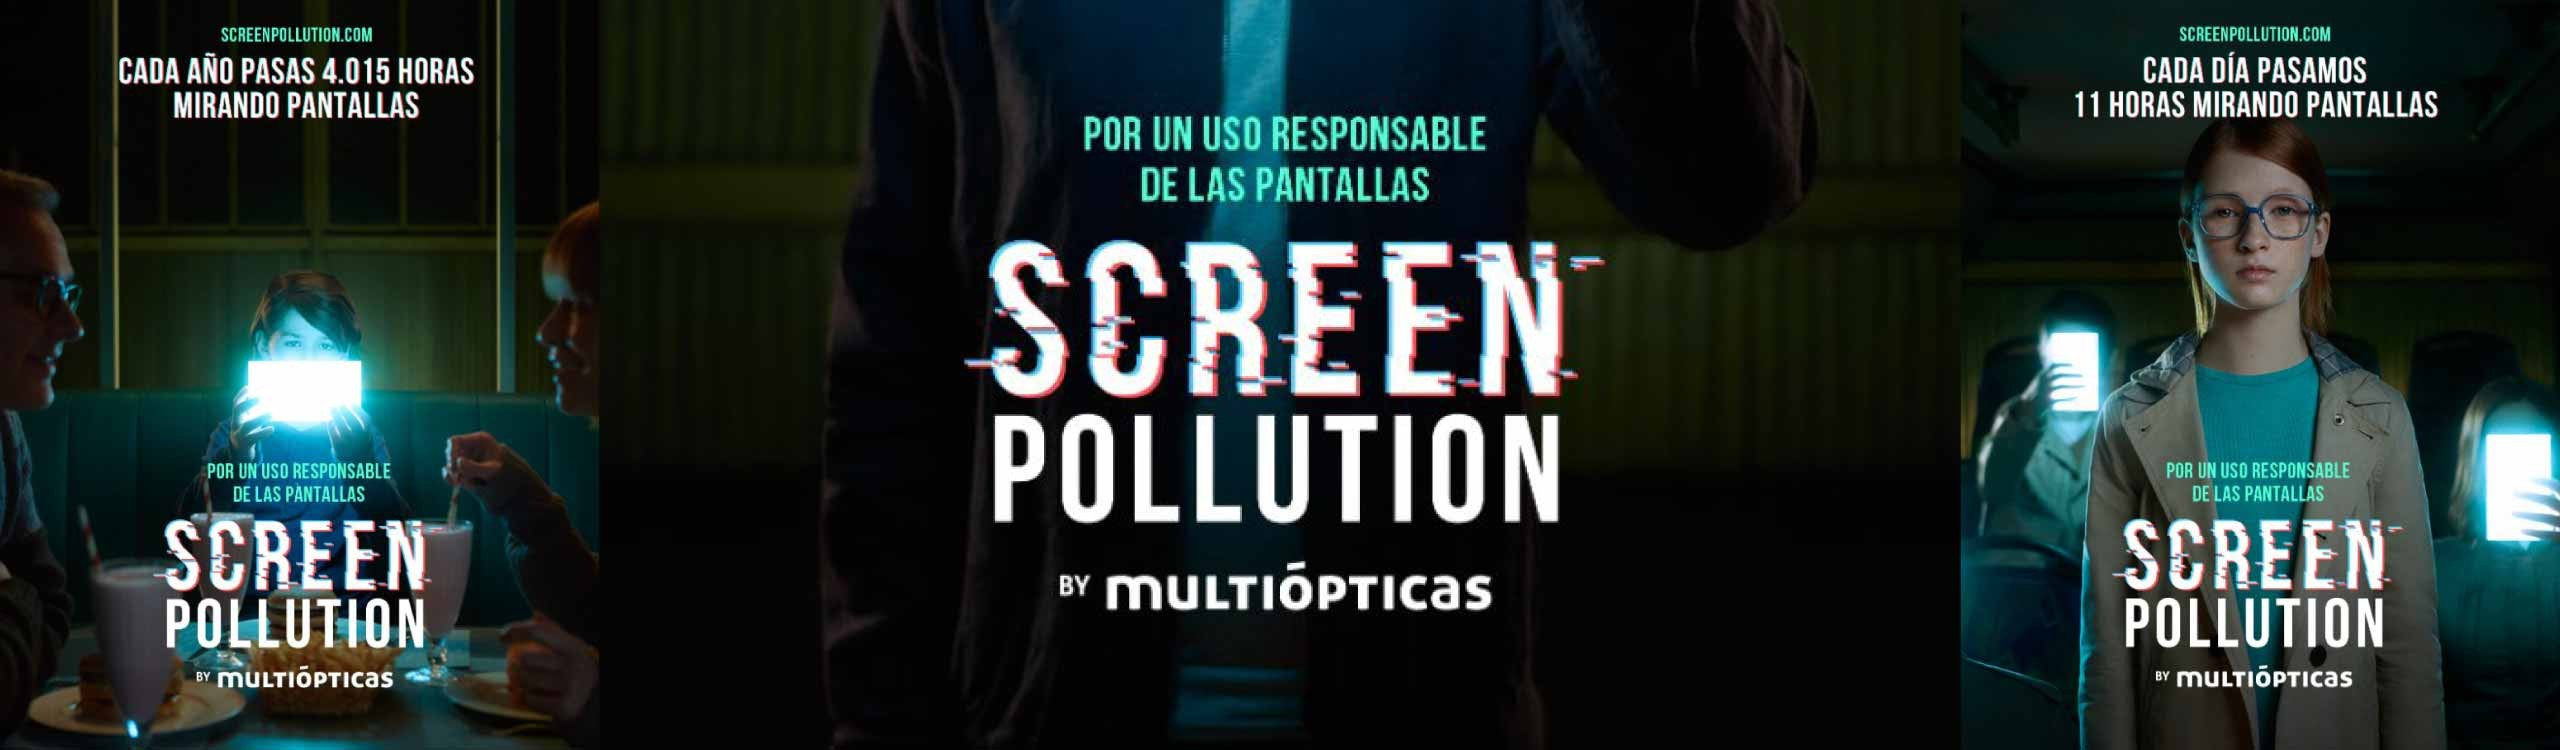 screen-pollution-multiopticas-mis-gafas-de-pasta-destacado